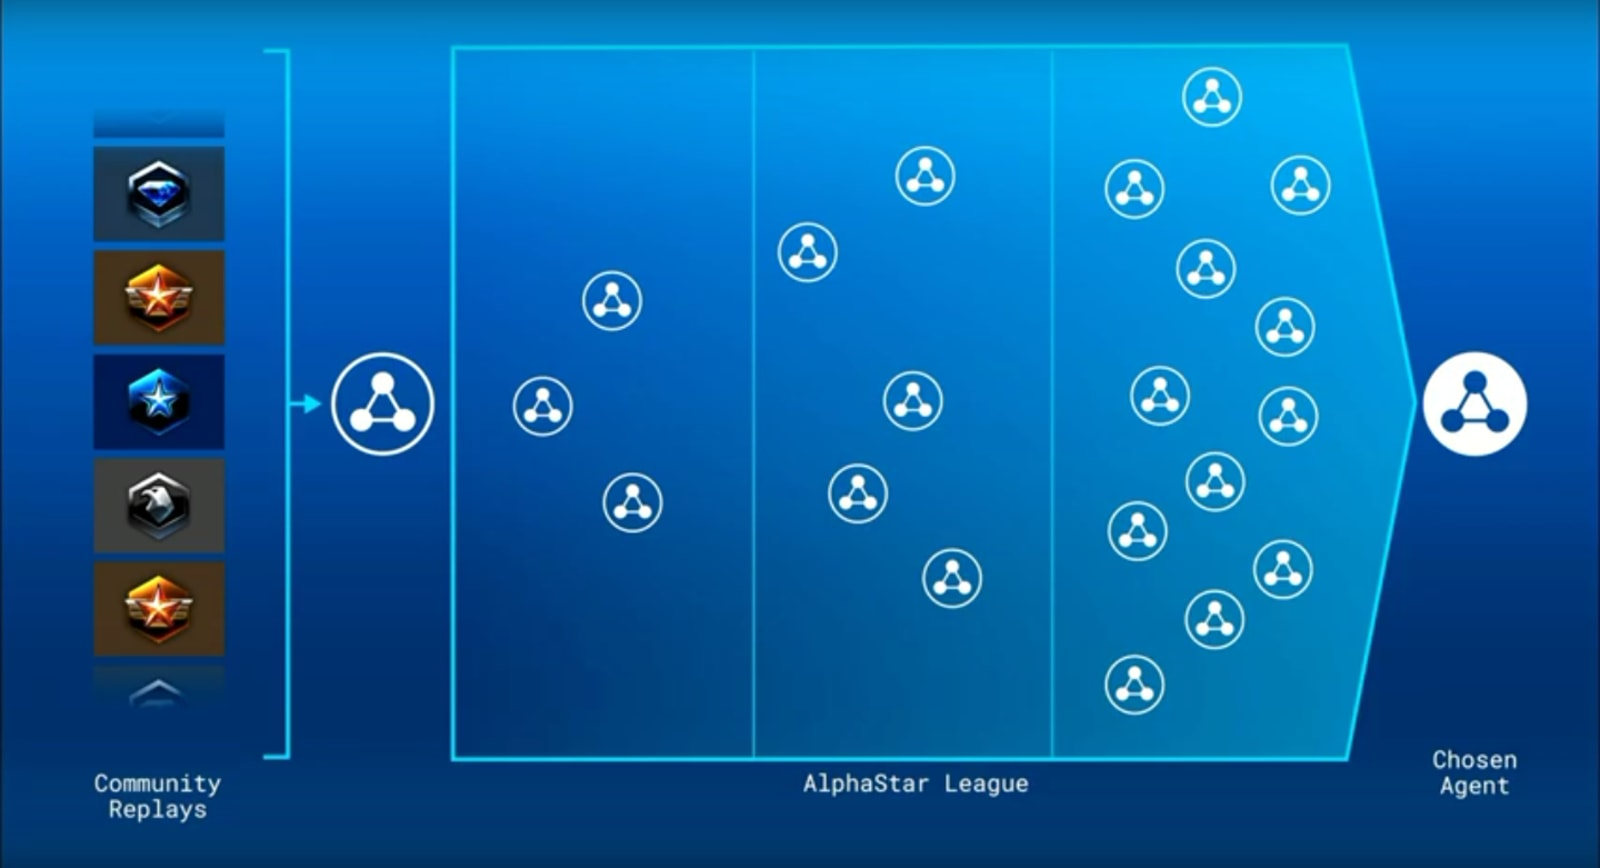 AlphaStar League